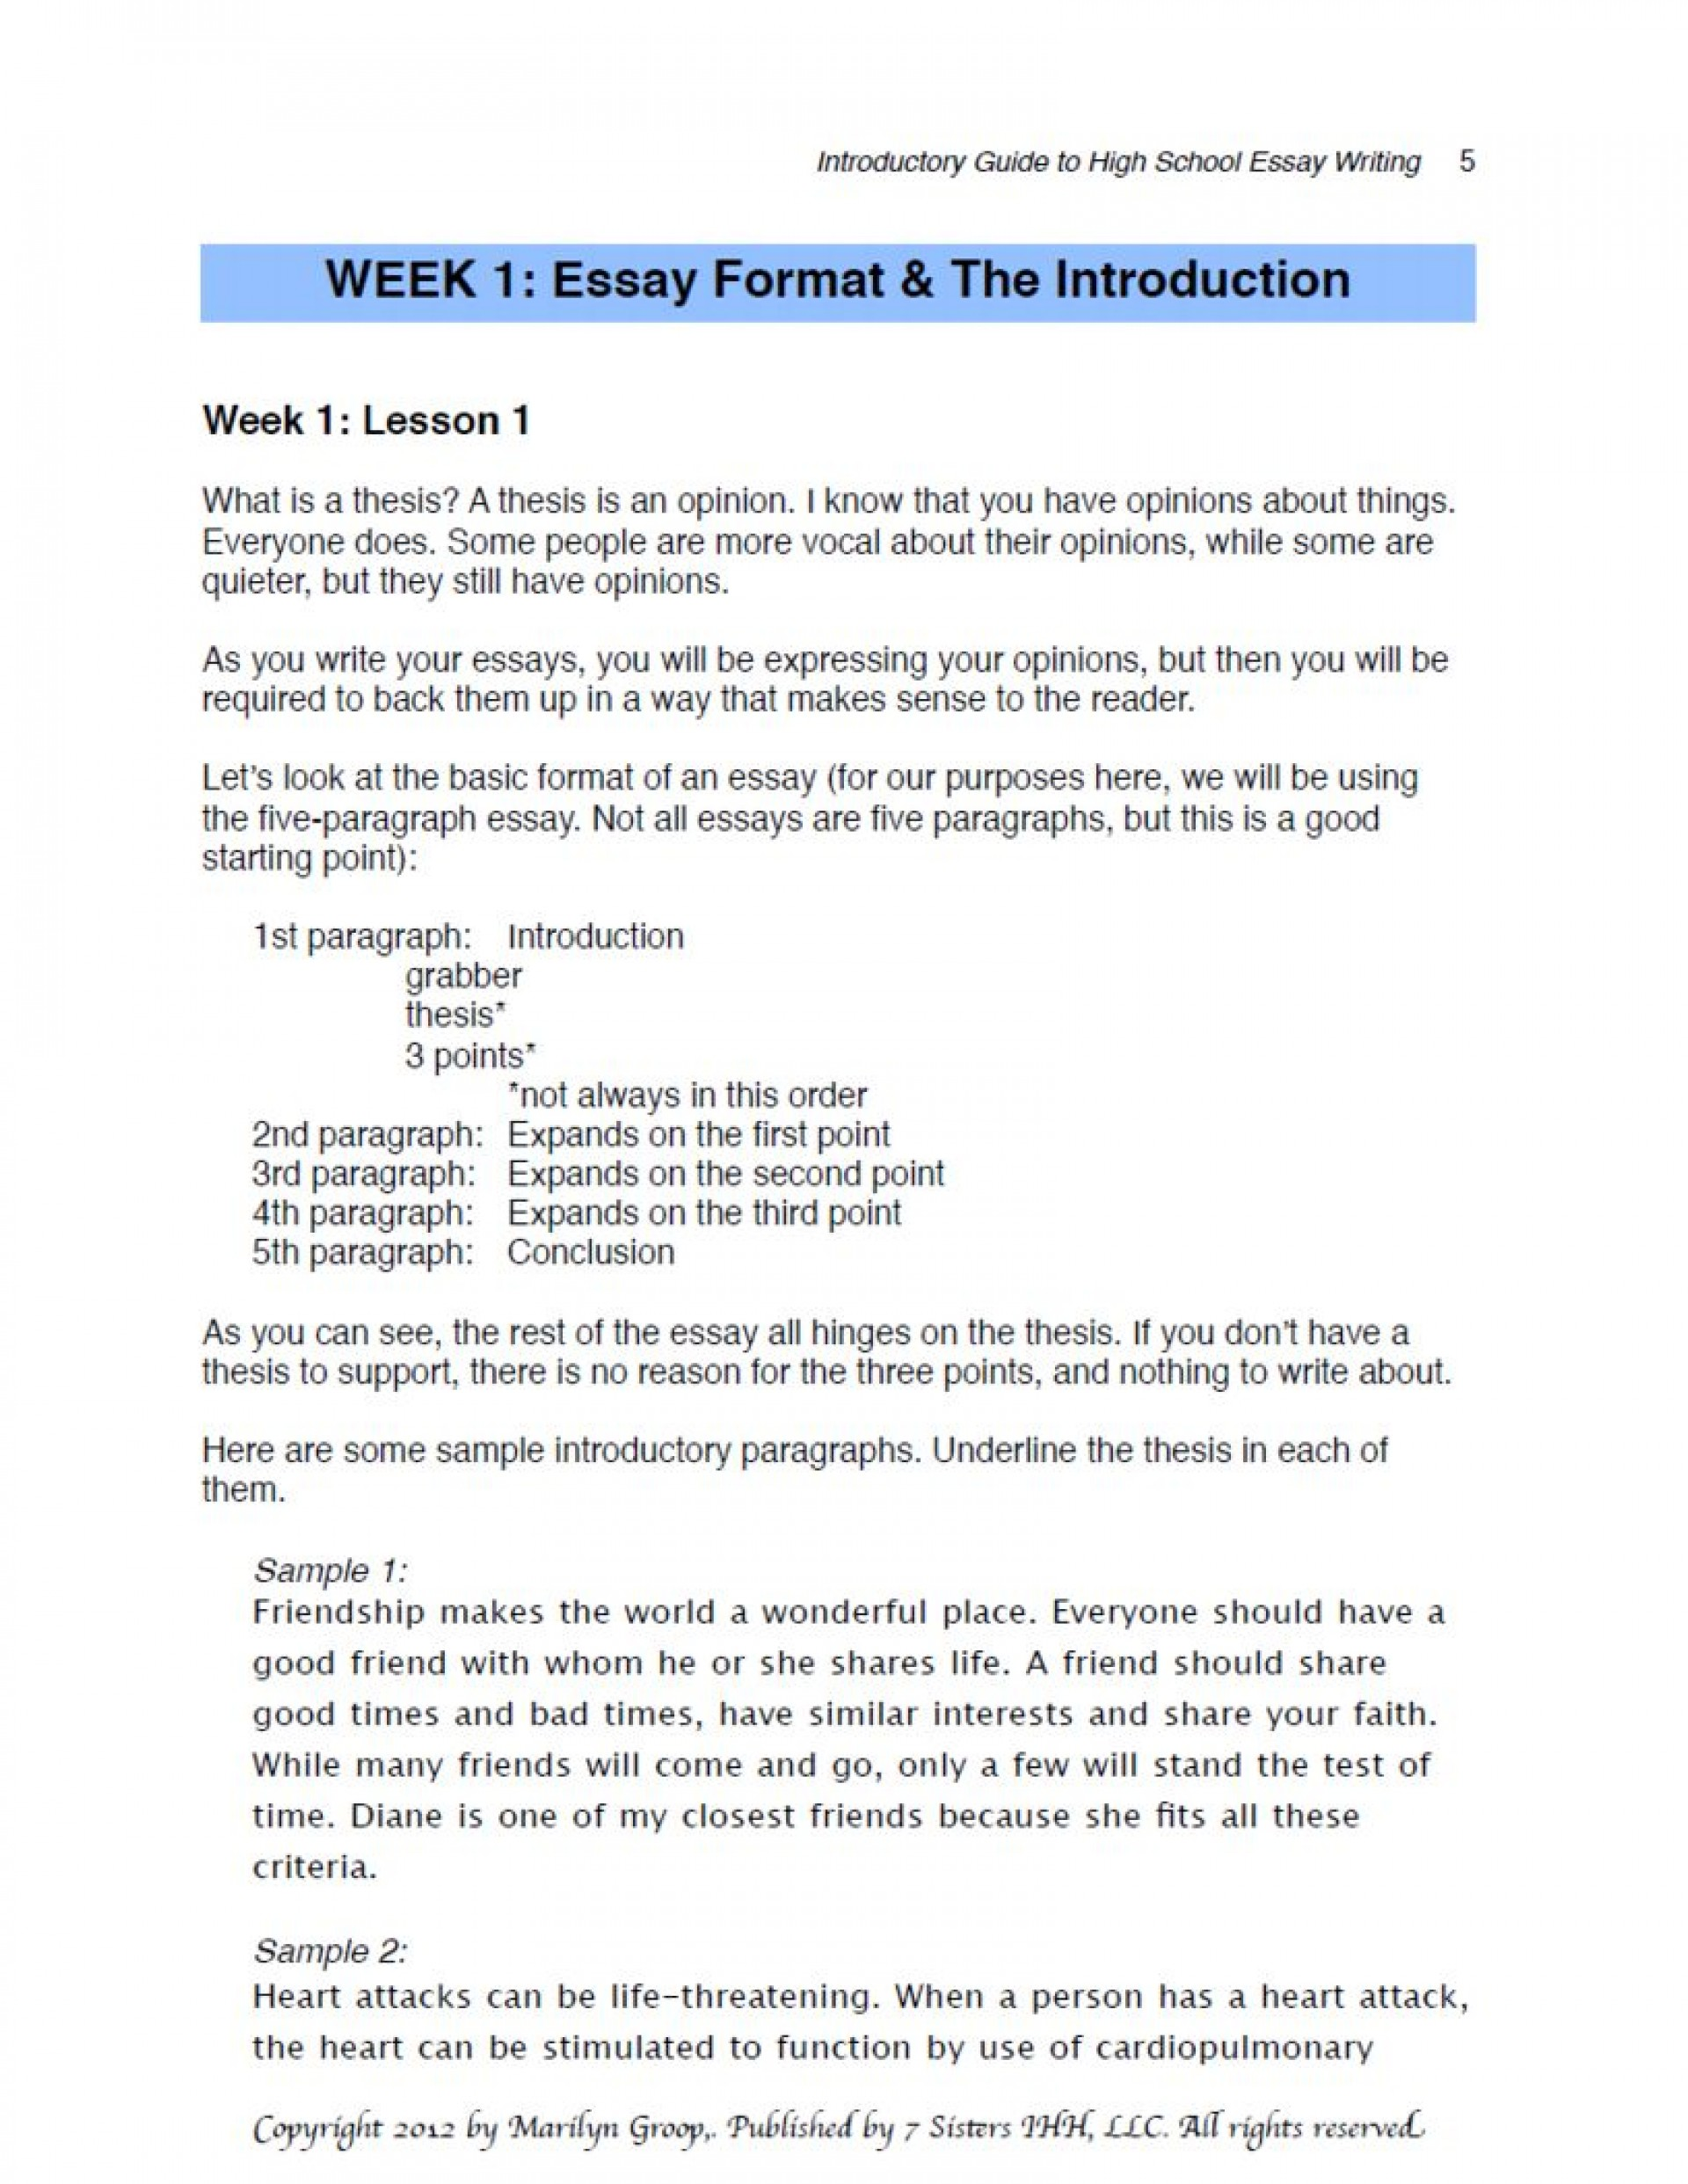 005 Uncategorized20riendship Essays True Examples In Hindi Writing Effective Thesis Statements Point Statement Research Stupendous 3 1920